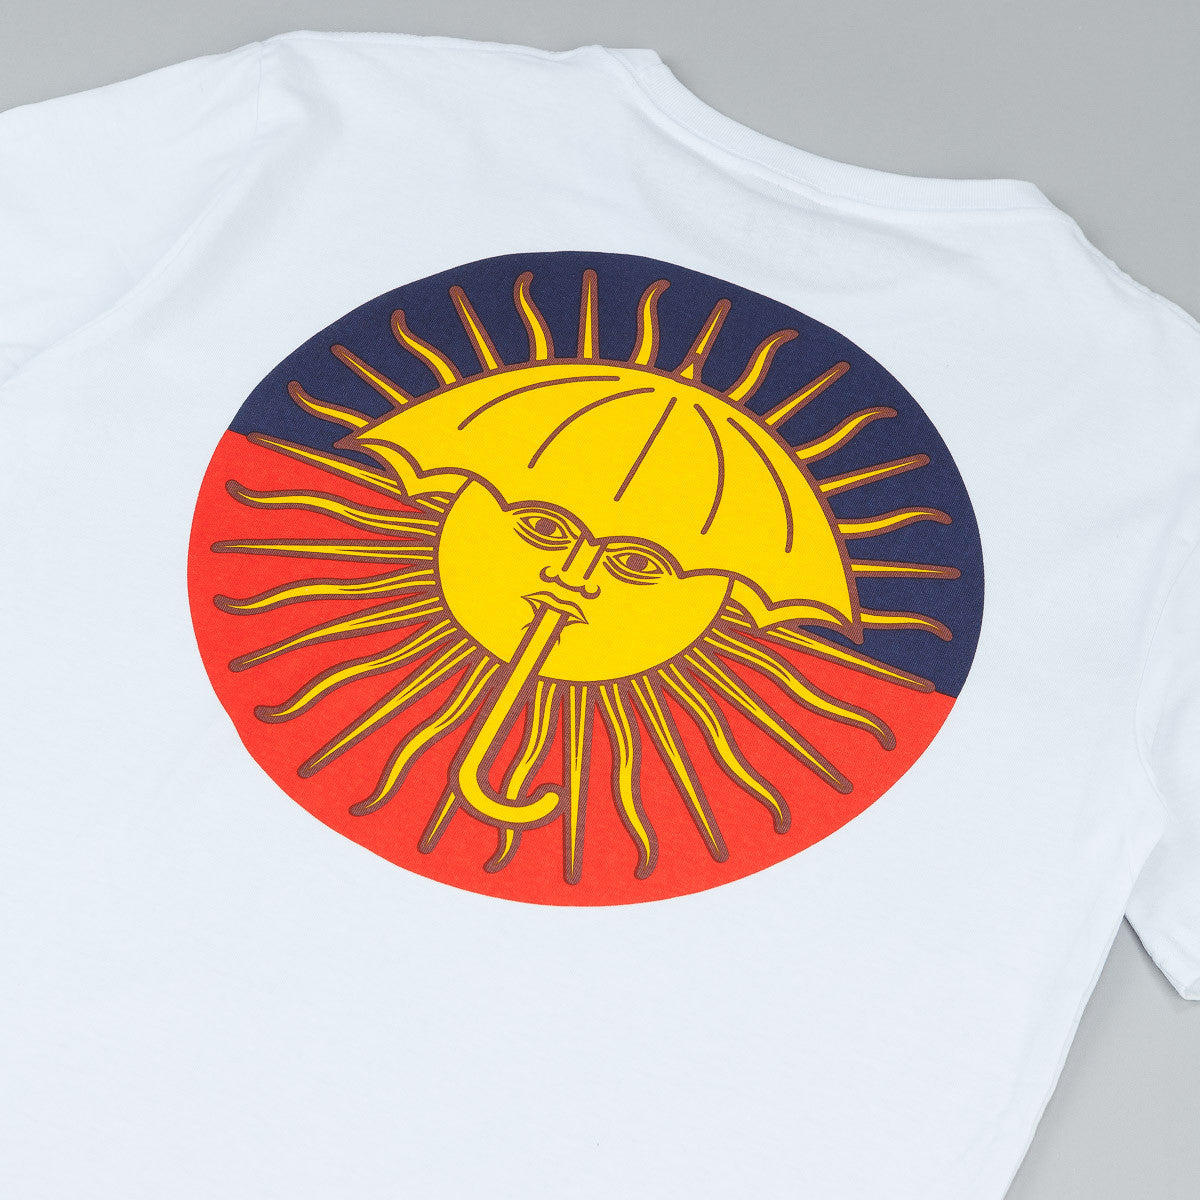 Helas Parasol De Mayo T-Shirt White / Navy - Red